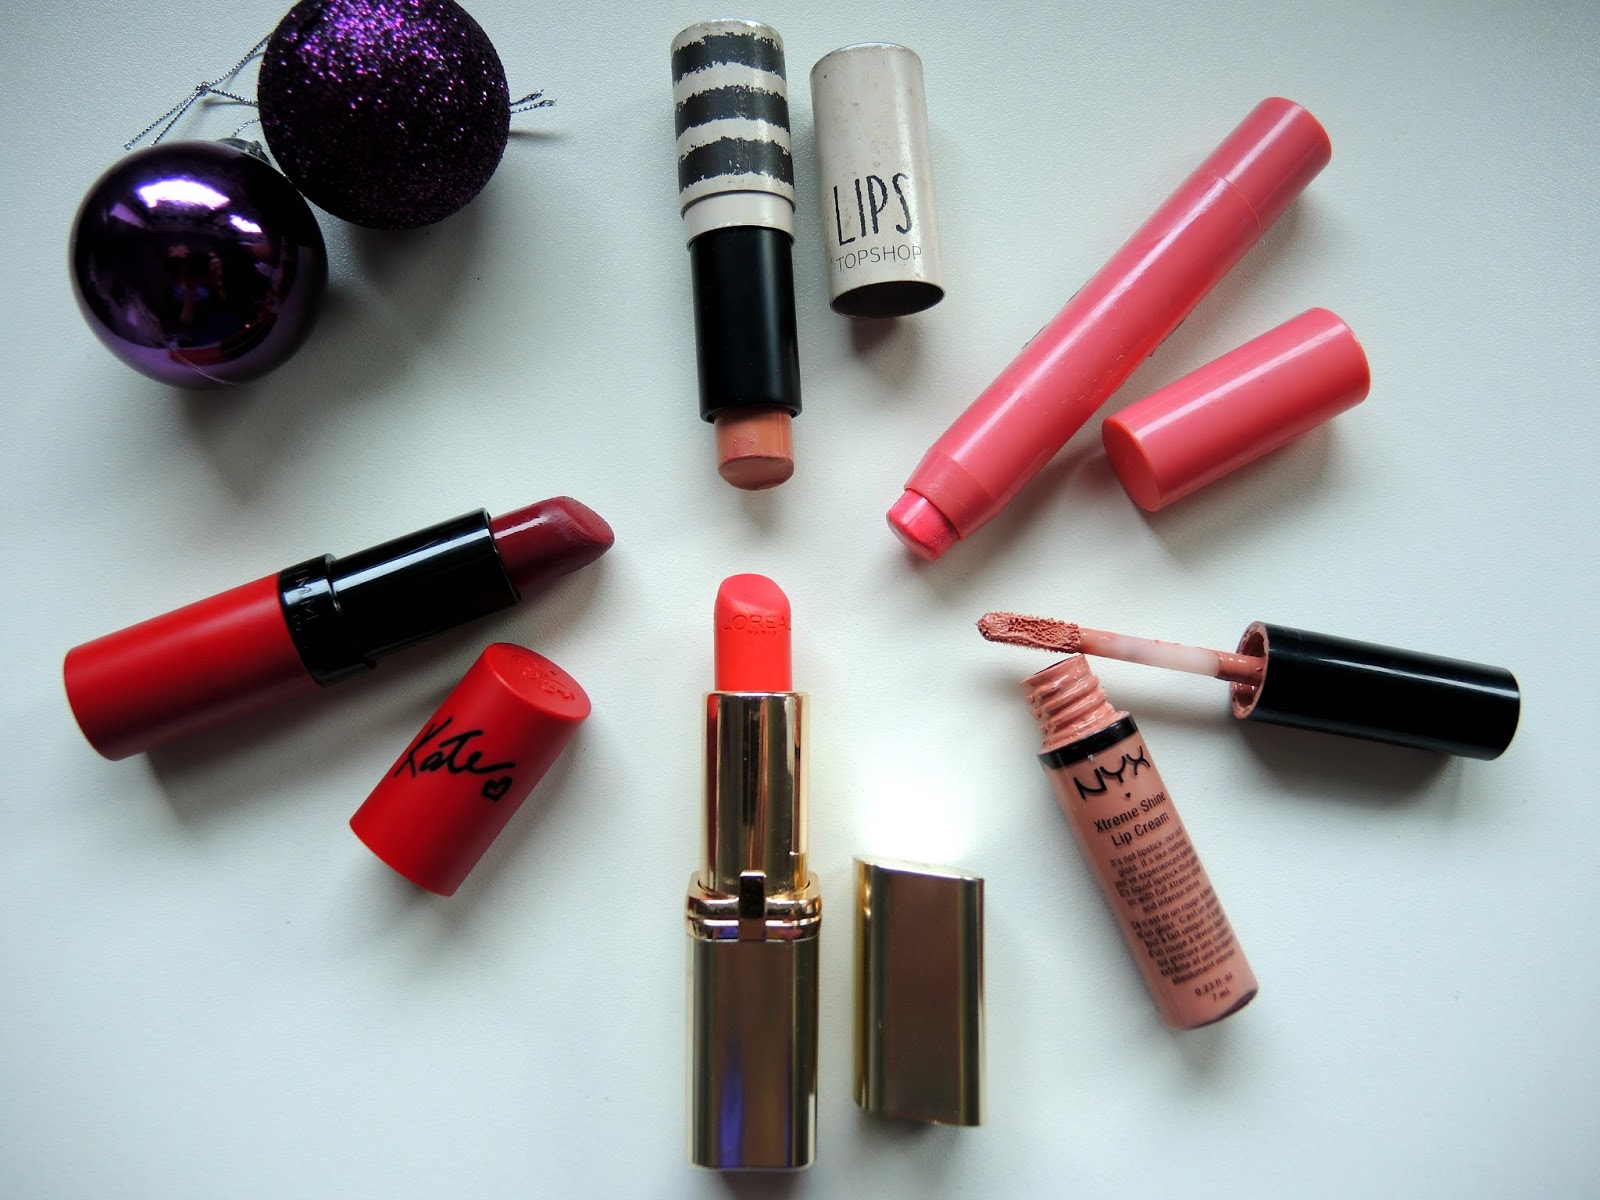 Top 5 Most Worn High Street Lipsticks | NYX, Rimmel, Topshop, L'Oreal